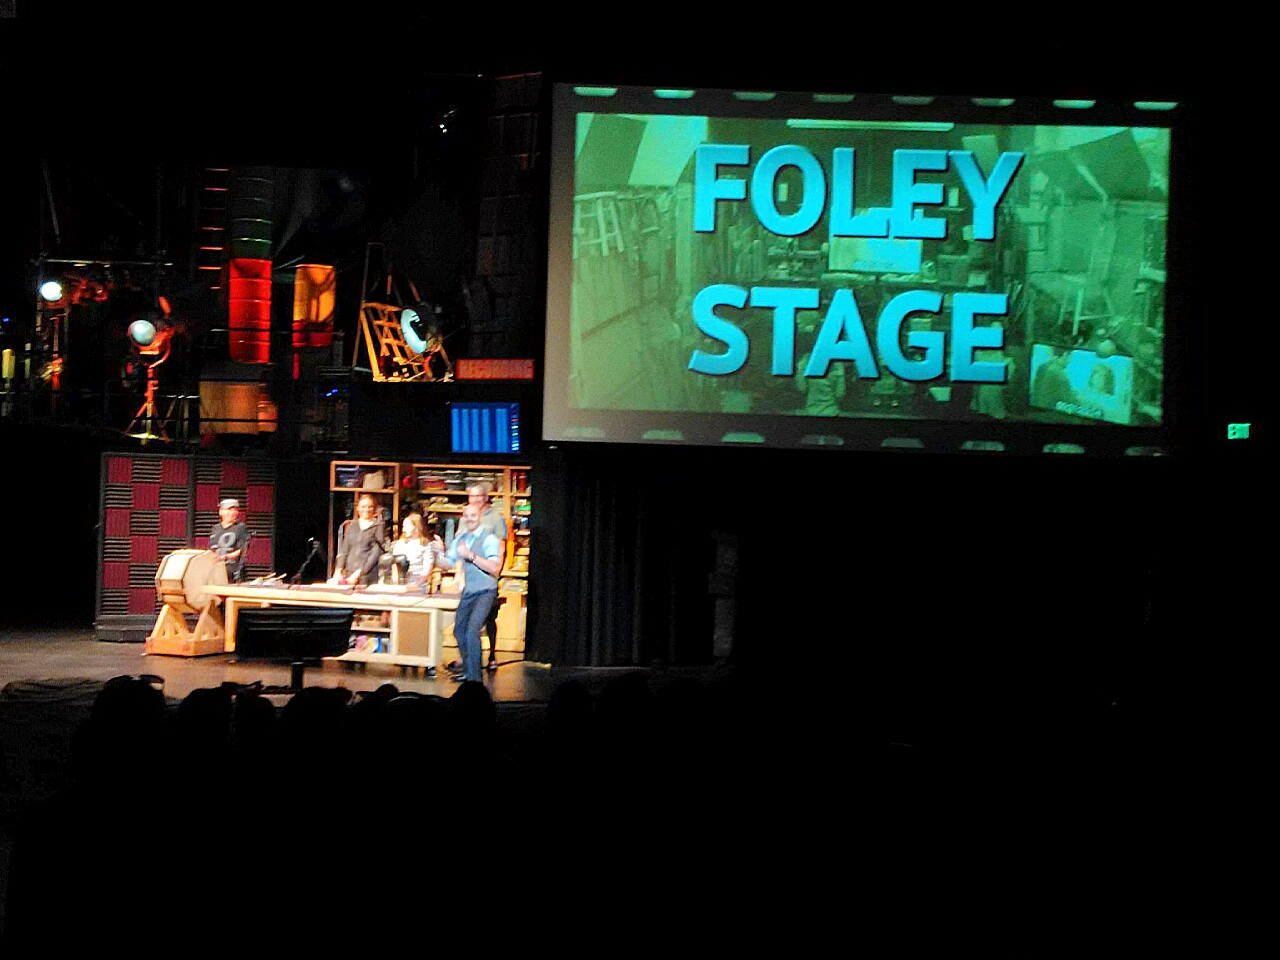 Special Effects Show Foley Stage